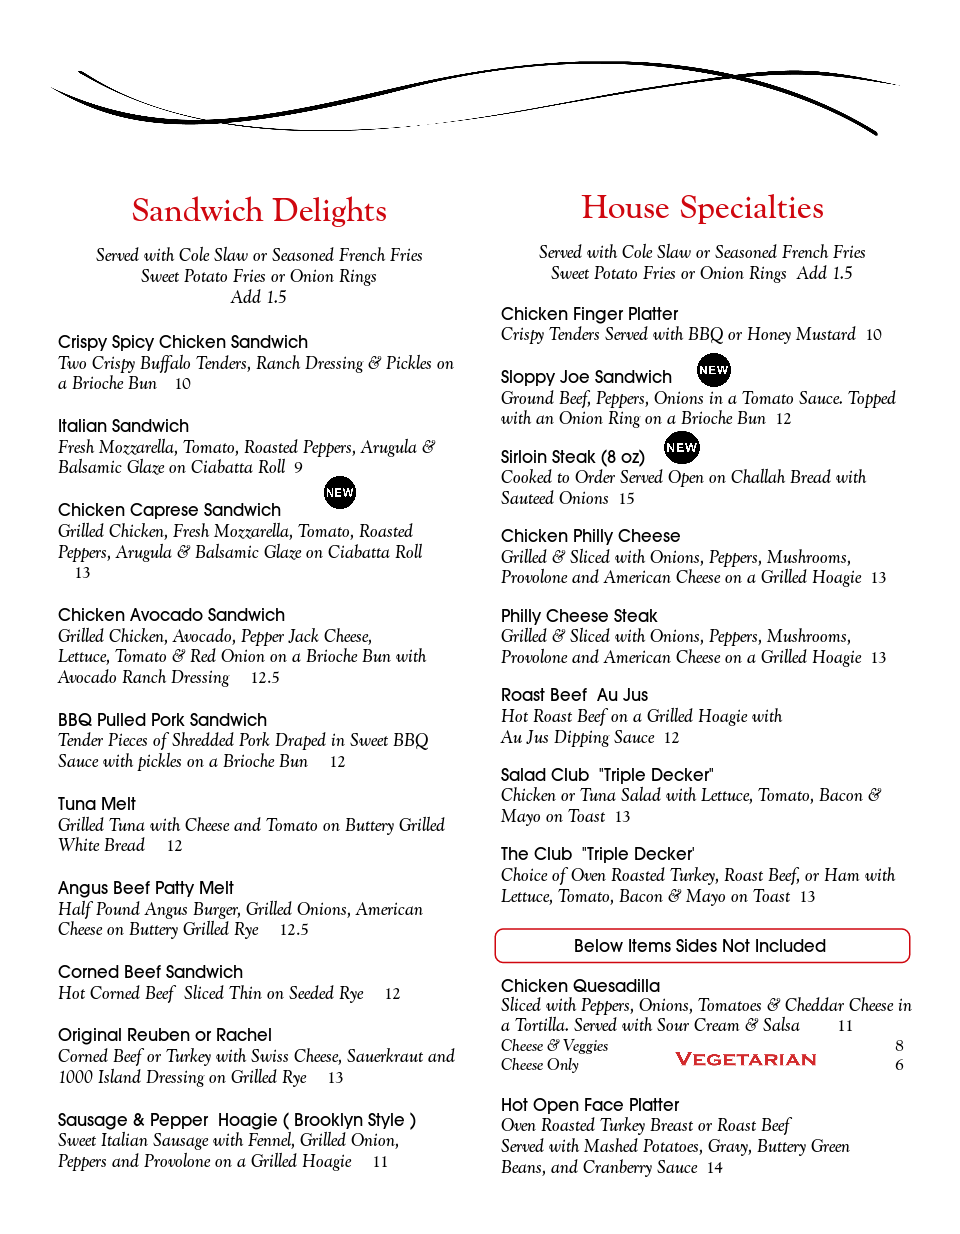 Sandwich Delights And House Specialties